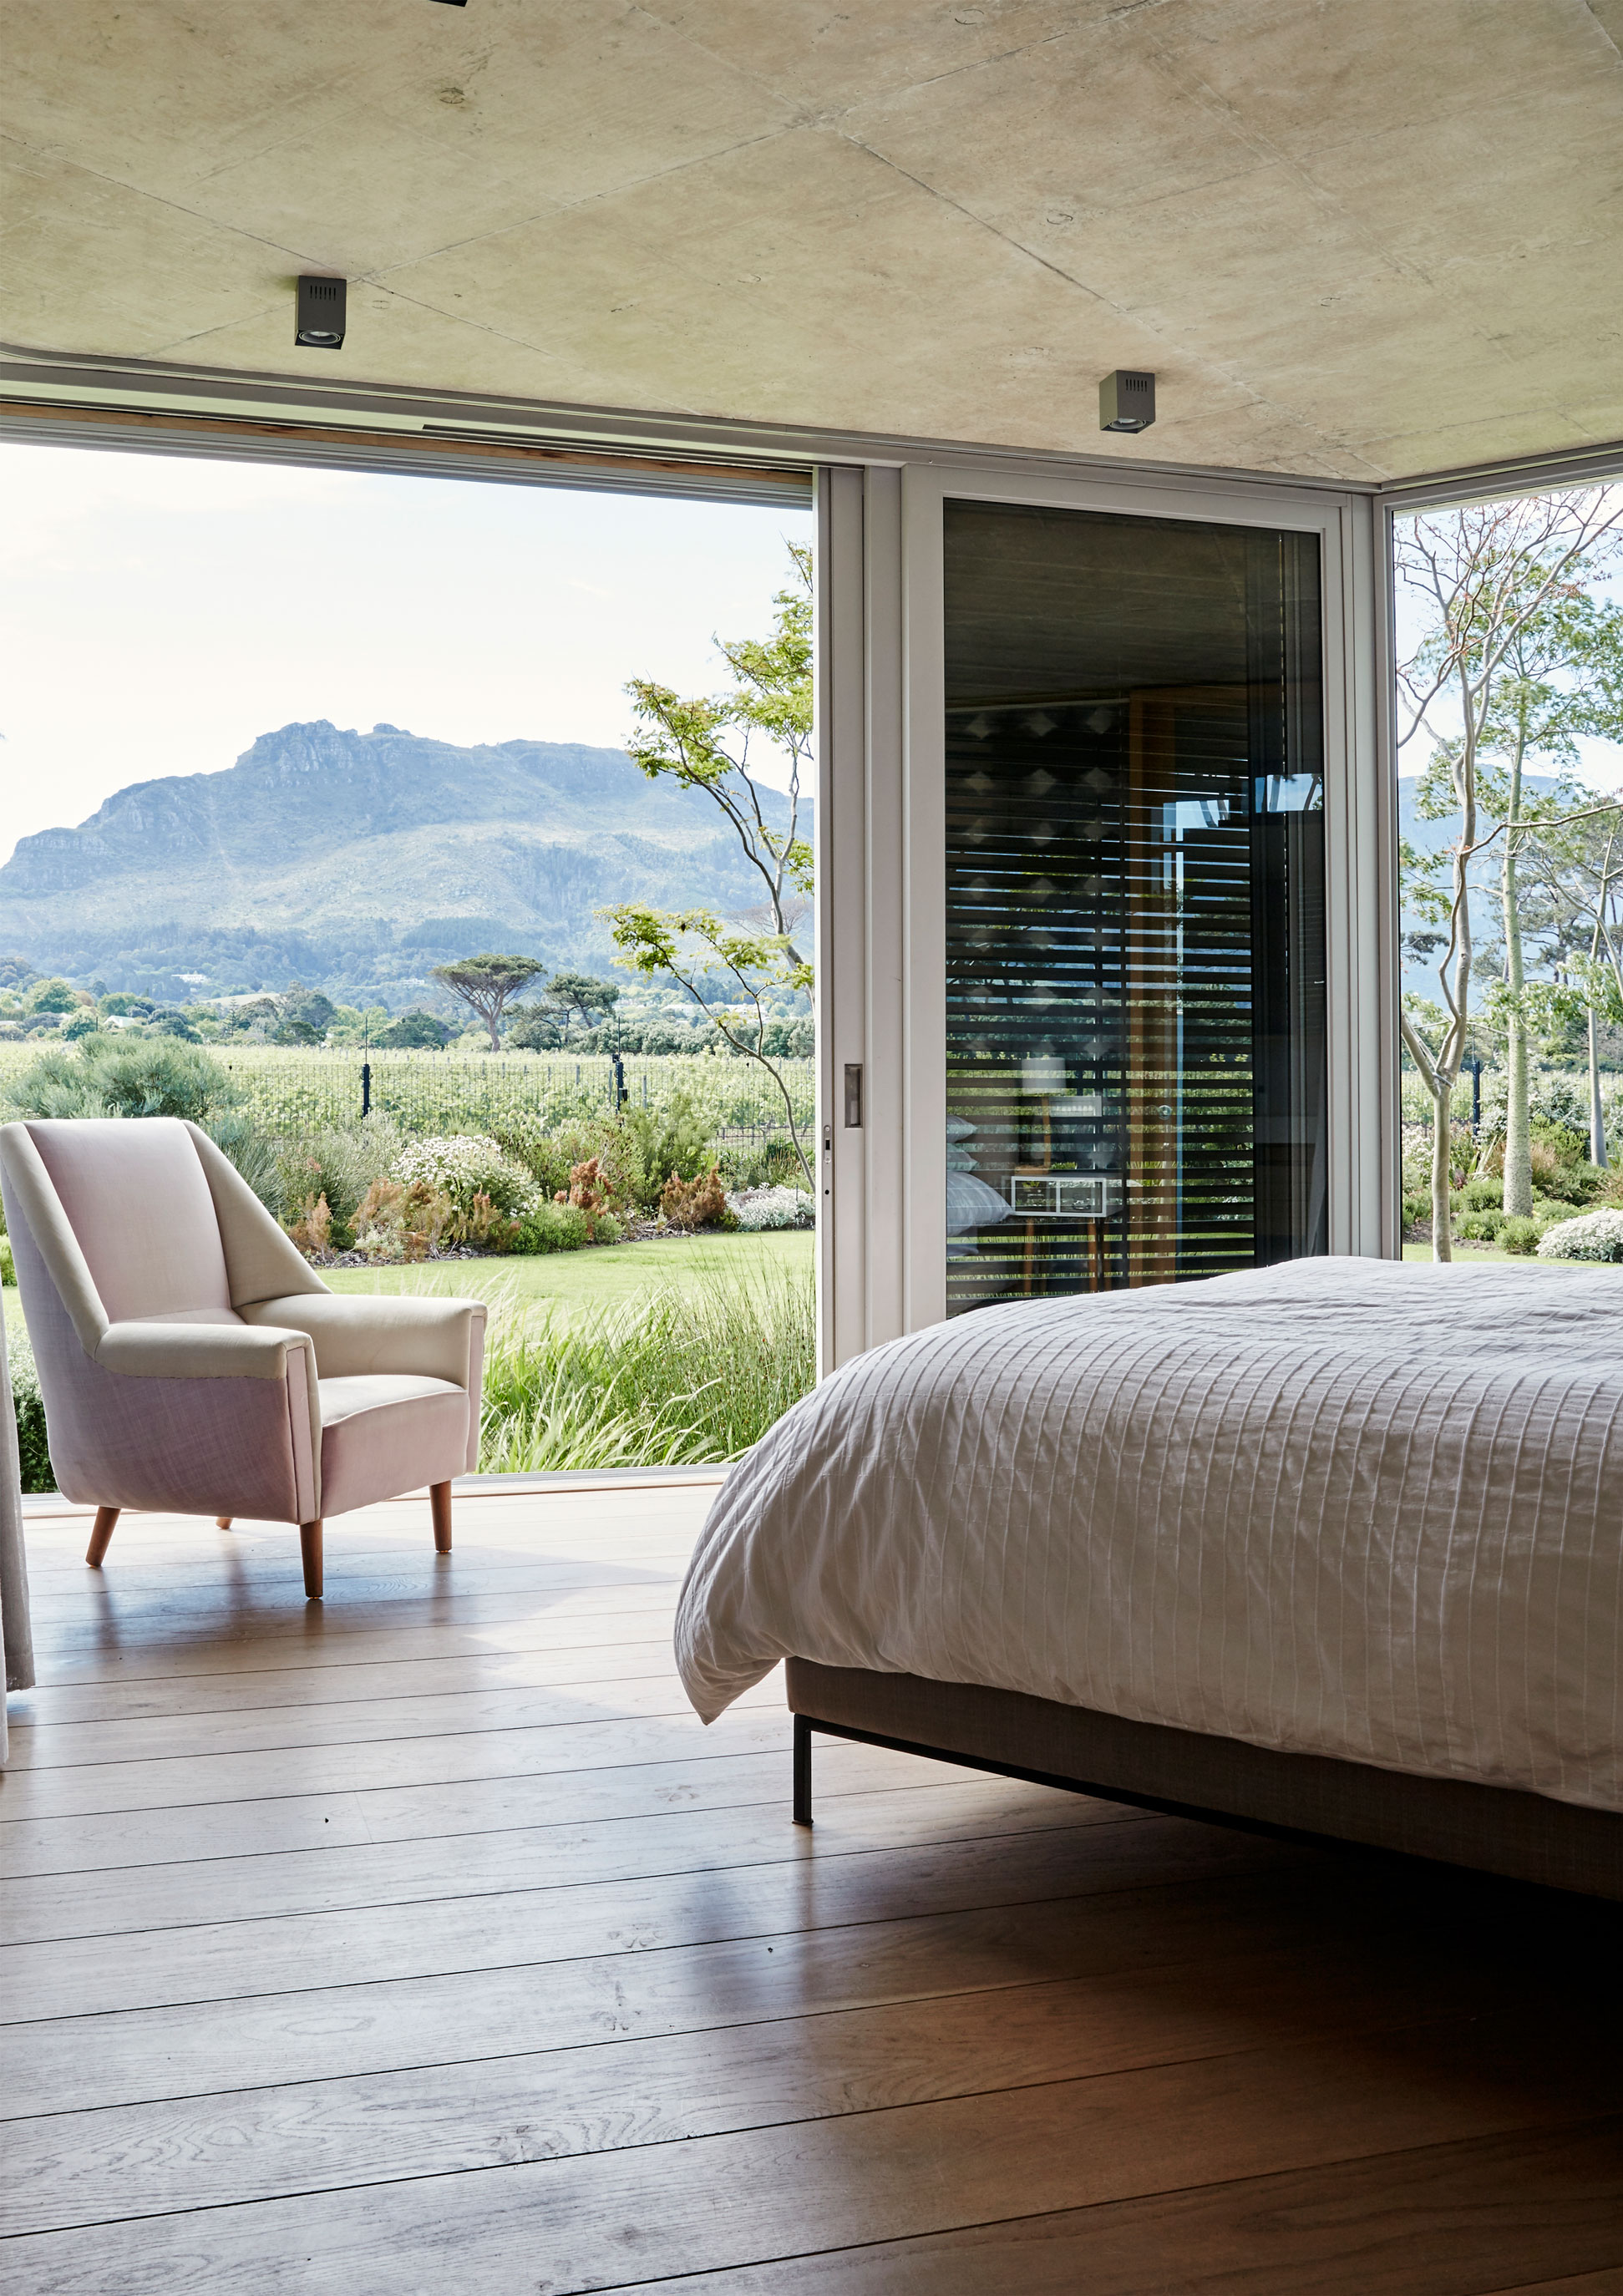 The master bedroom at the end of the bedroom wing has spectacular views of the garden, over the vineyards and to the Table Mountain range beyond. The angled, stepped formation of the rooms makes it possible for them each to have a north- and west-facing aspect. While the floor-to-ceiling glass sliding doors enable the views, the necessary privacy is created with sliding cedar screens. There are no ceilings in the bedrooms $ع they feature raw off-shutter concrete. The anthropomorphic Sitting Lamp is by Graeme Bettles. 